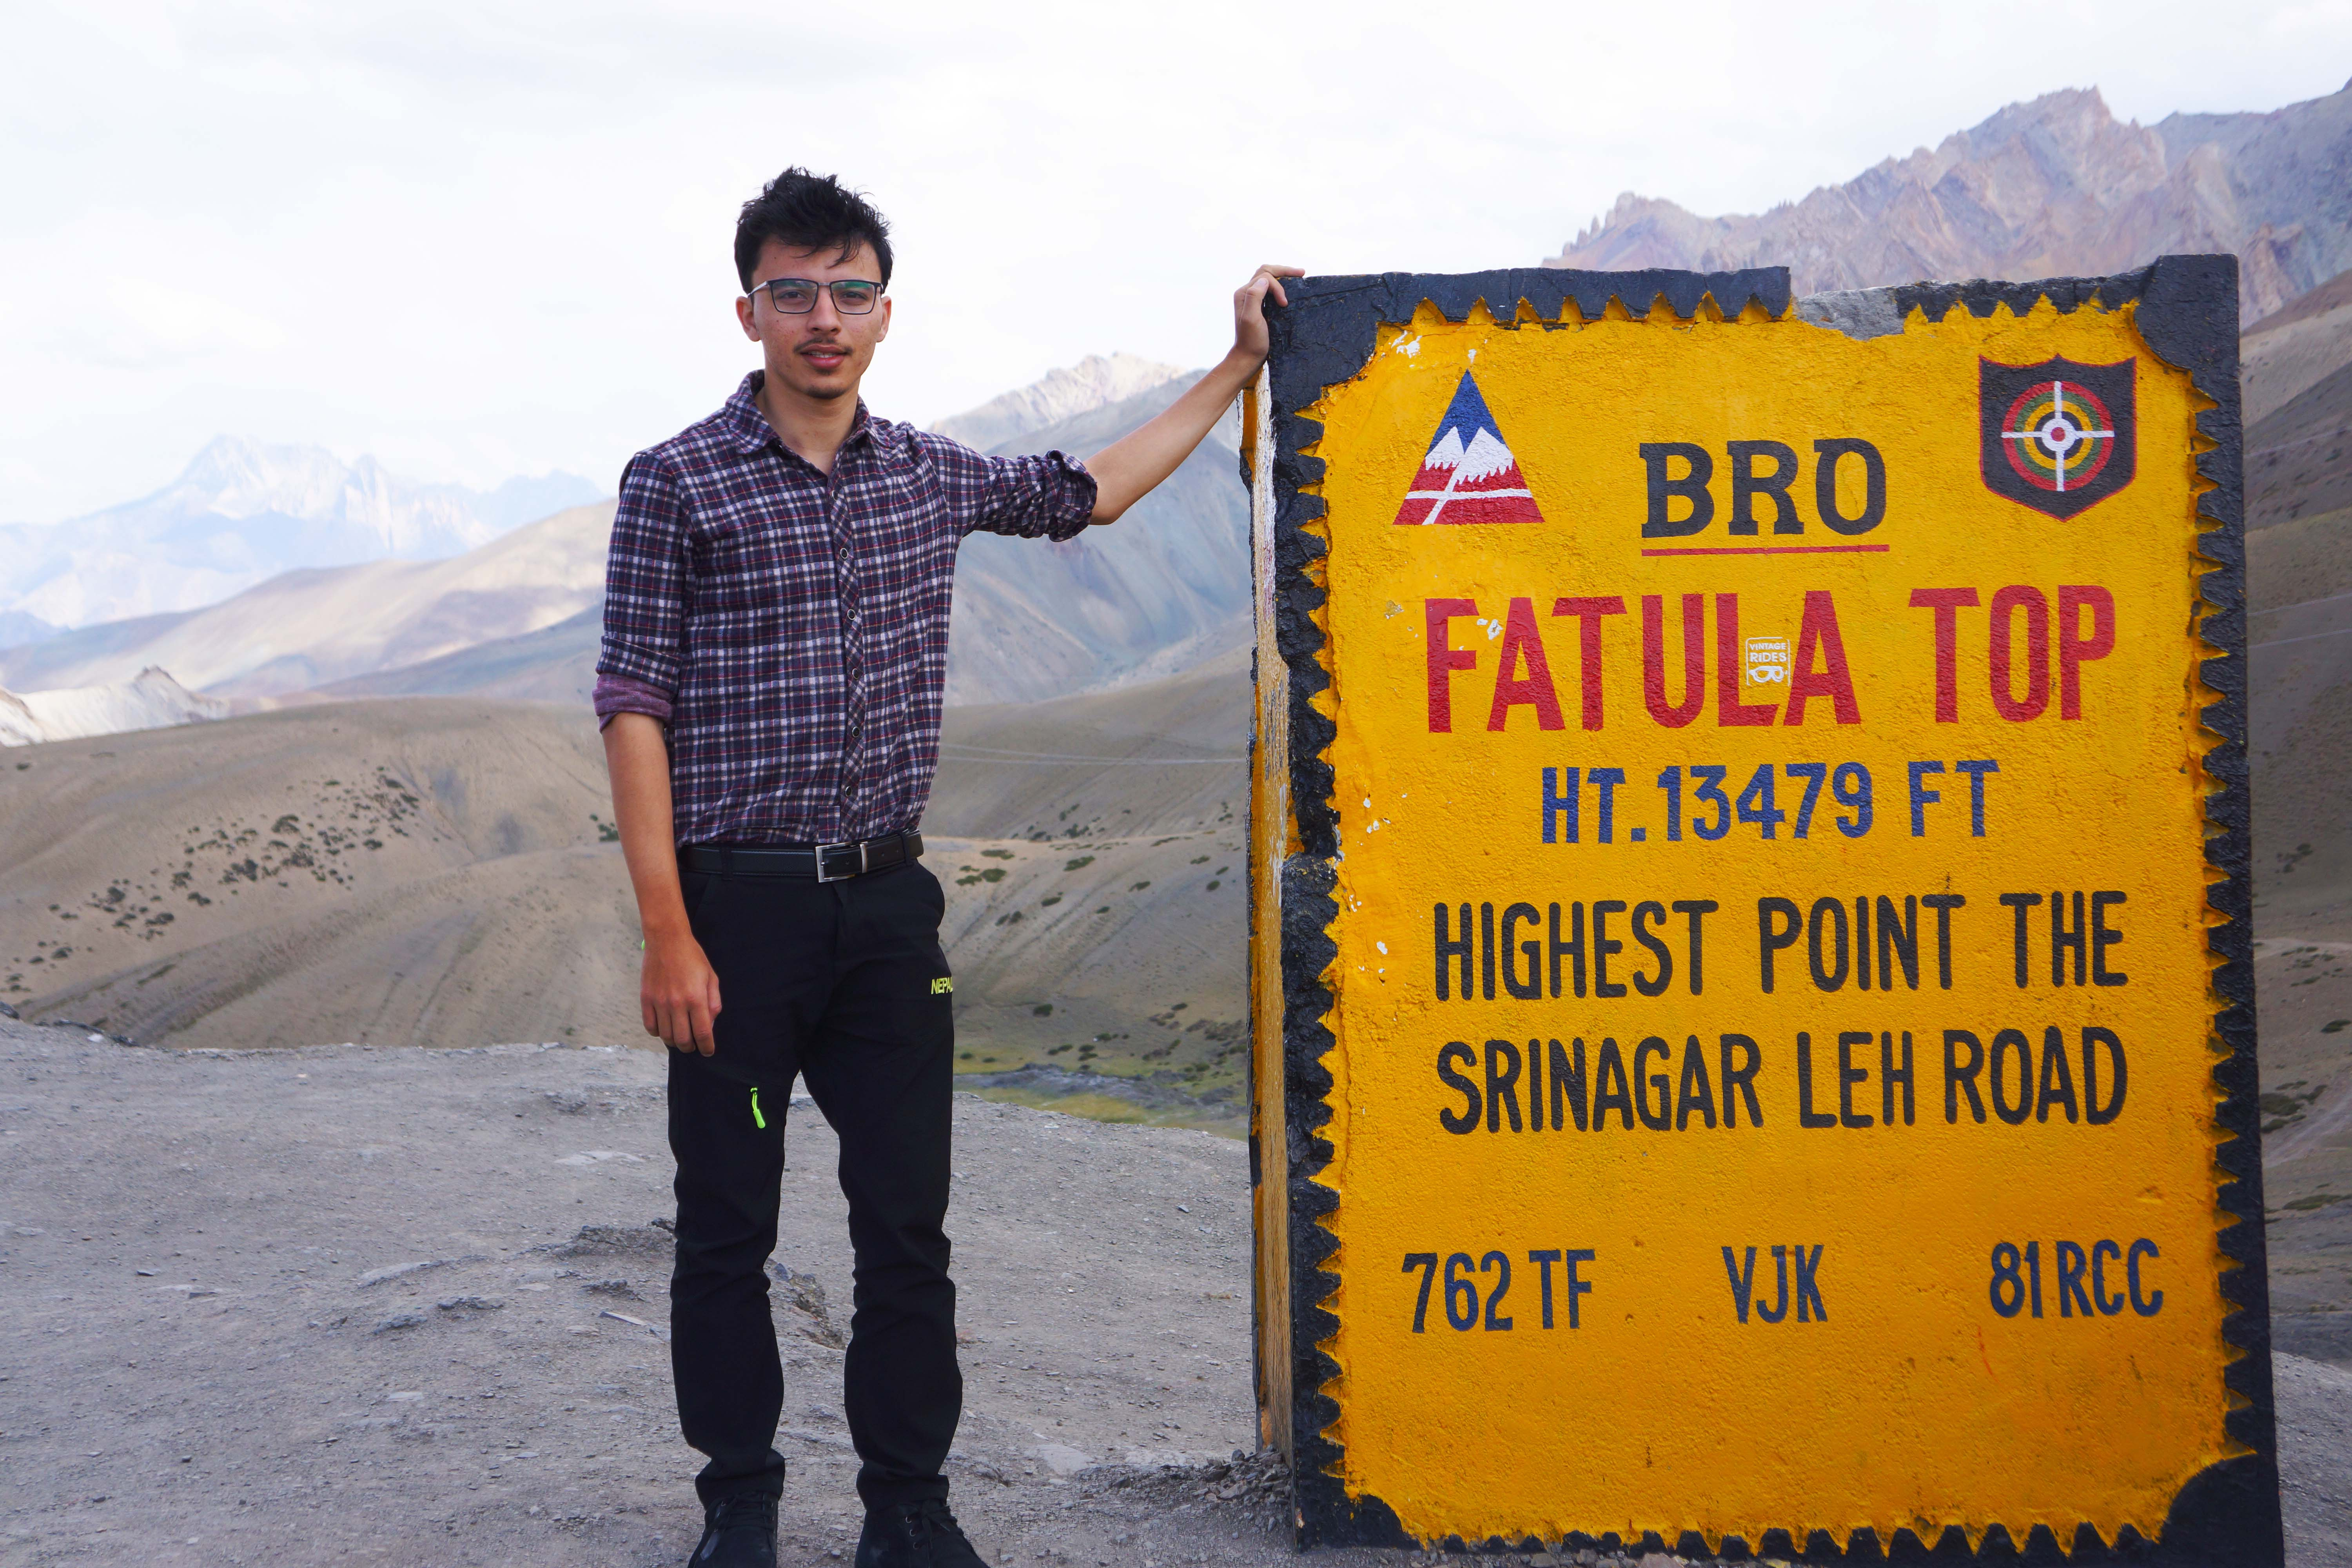 Beautiful view at fatula top ,the heighest point between srinagar leh highway altitude 13479 ft,Ladakh,Northern India